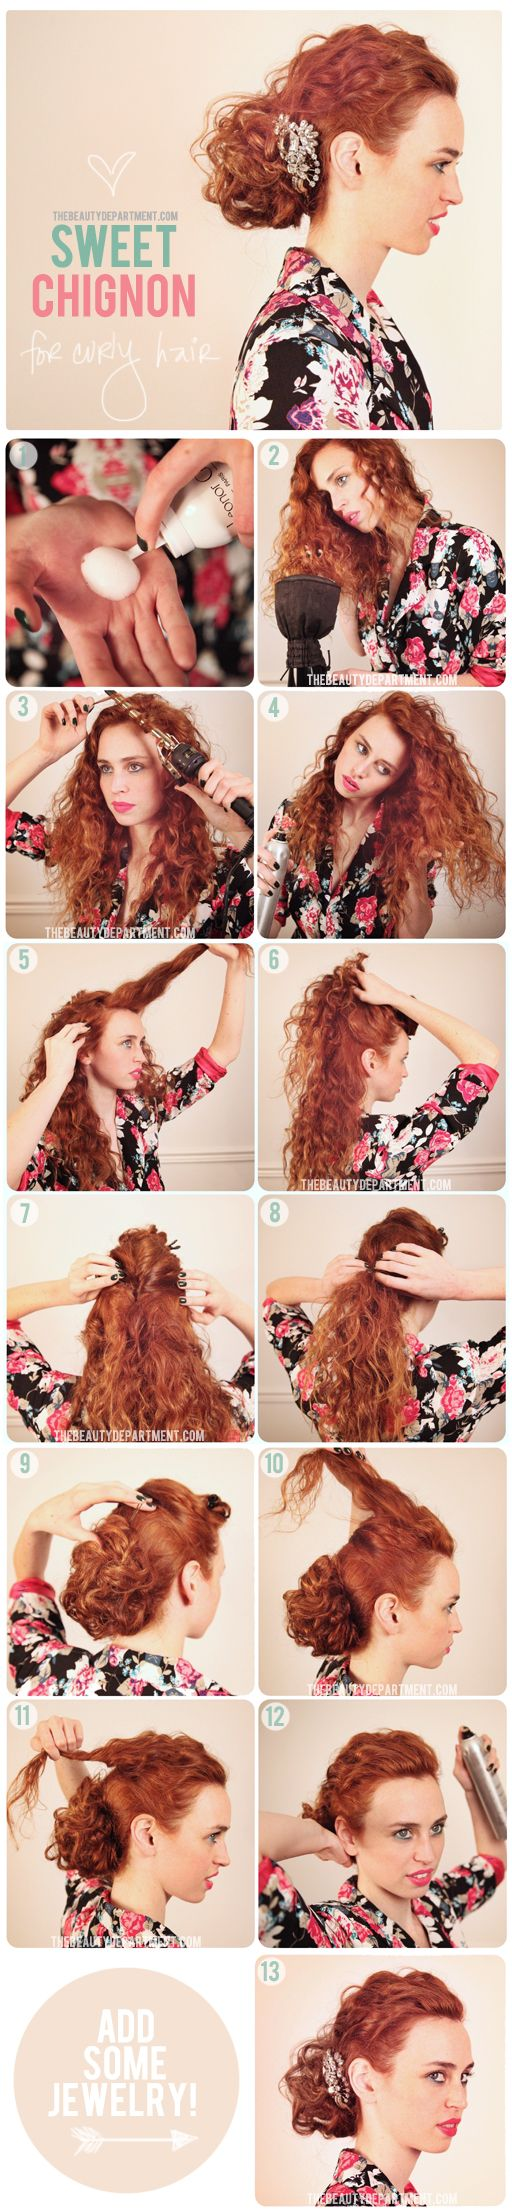 Calling all curly girls! Here's a fun, fancy little updo for you. We get lots of requests for updos on curly hair from our readers who want to embrace their natural texture. Working with curls when doing an updo is so much fun because almost anything you do looks romantic + girly! This tutorial is pretty easy and you can accessorize it with anything you want.